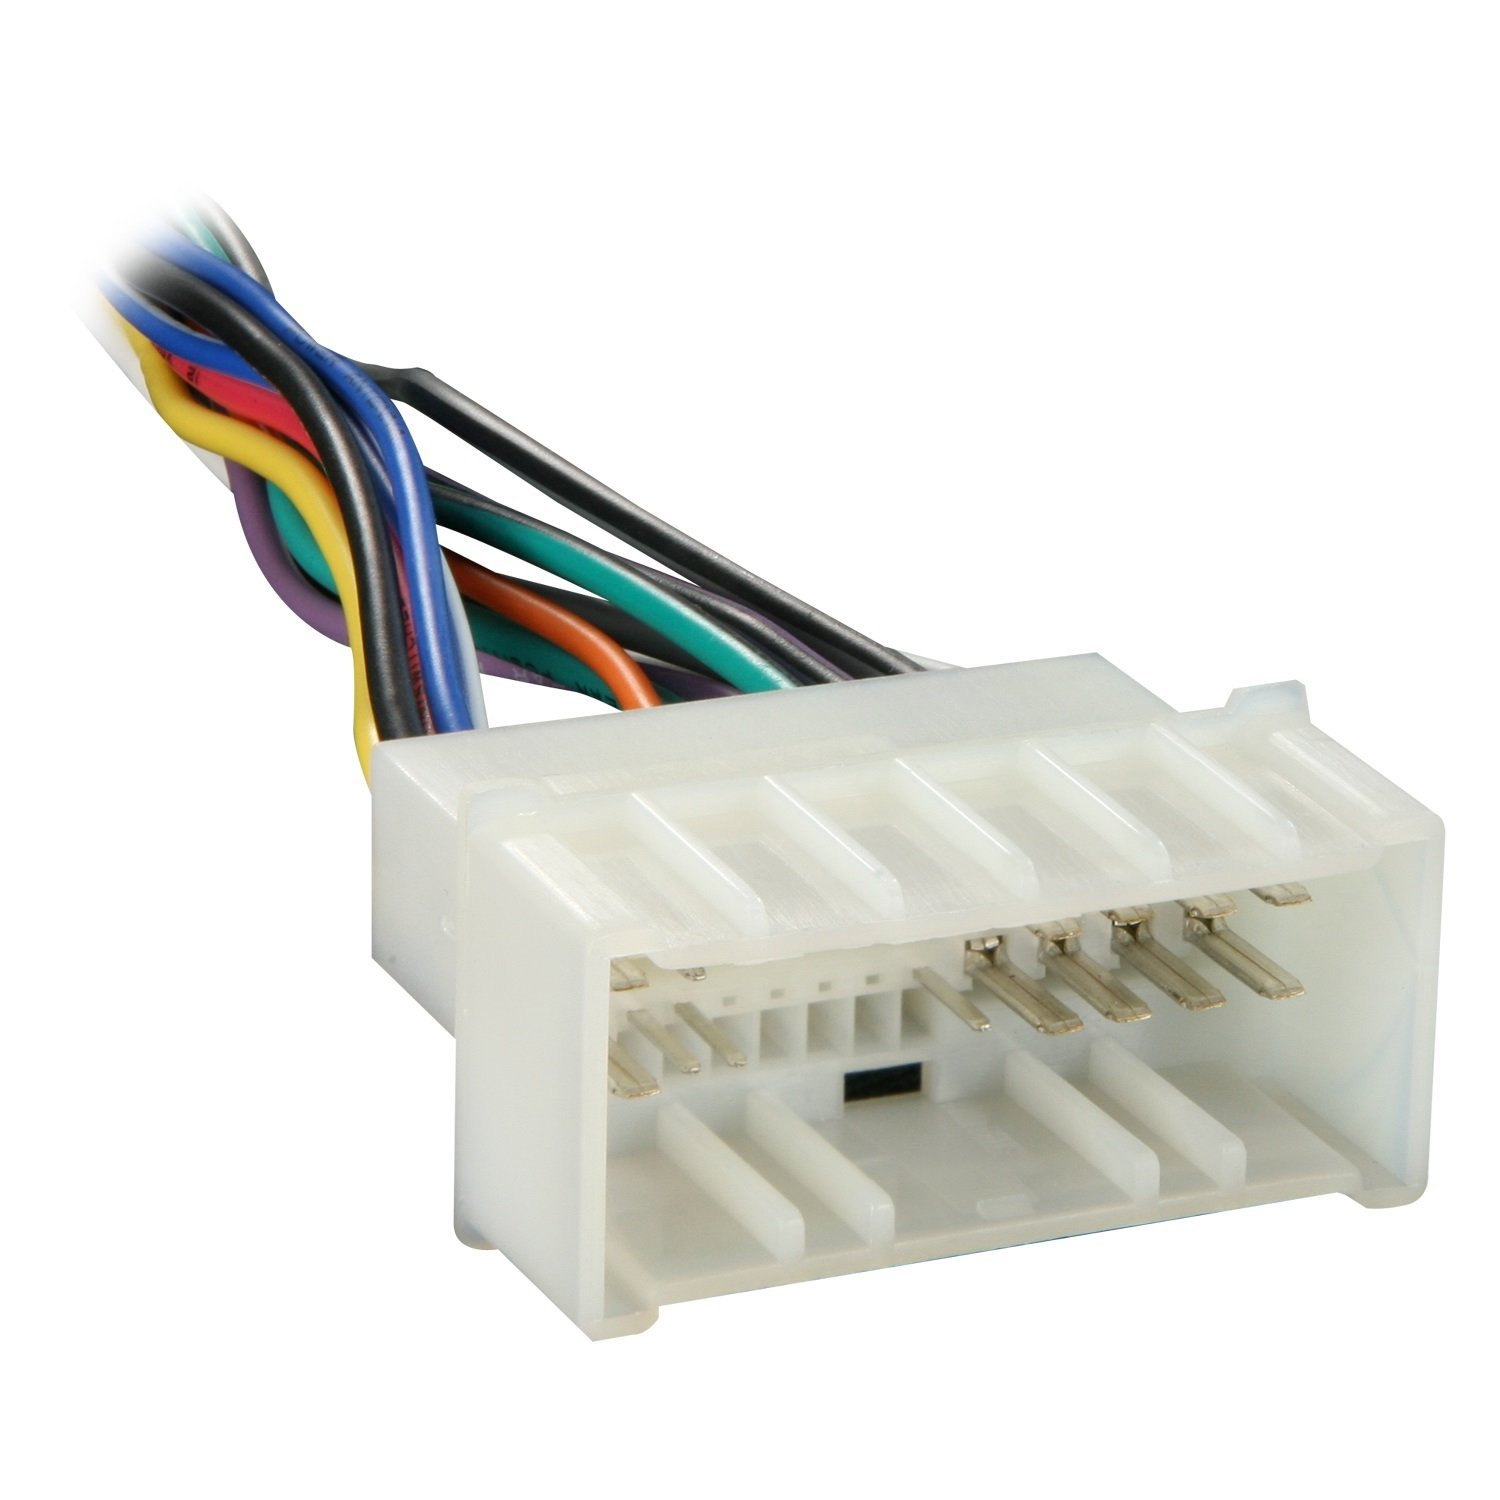 70-1004 Radio Wiring Harness for 04-Up Kia/06-Up Hyndai, Plugs into Car  Harness By Metra - Walmart.com